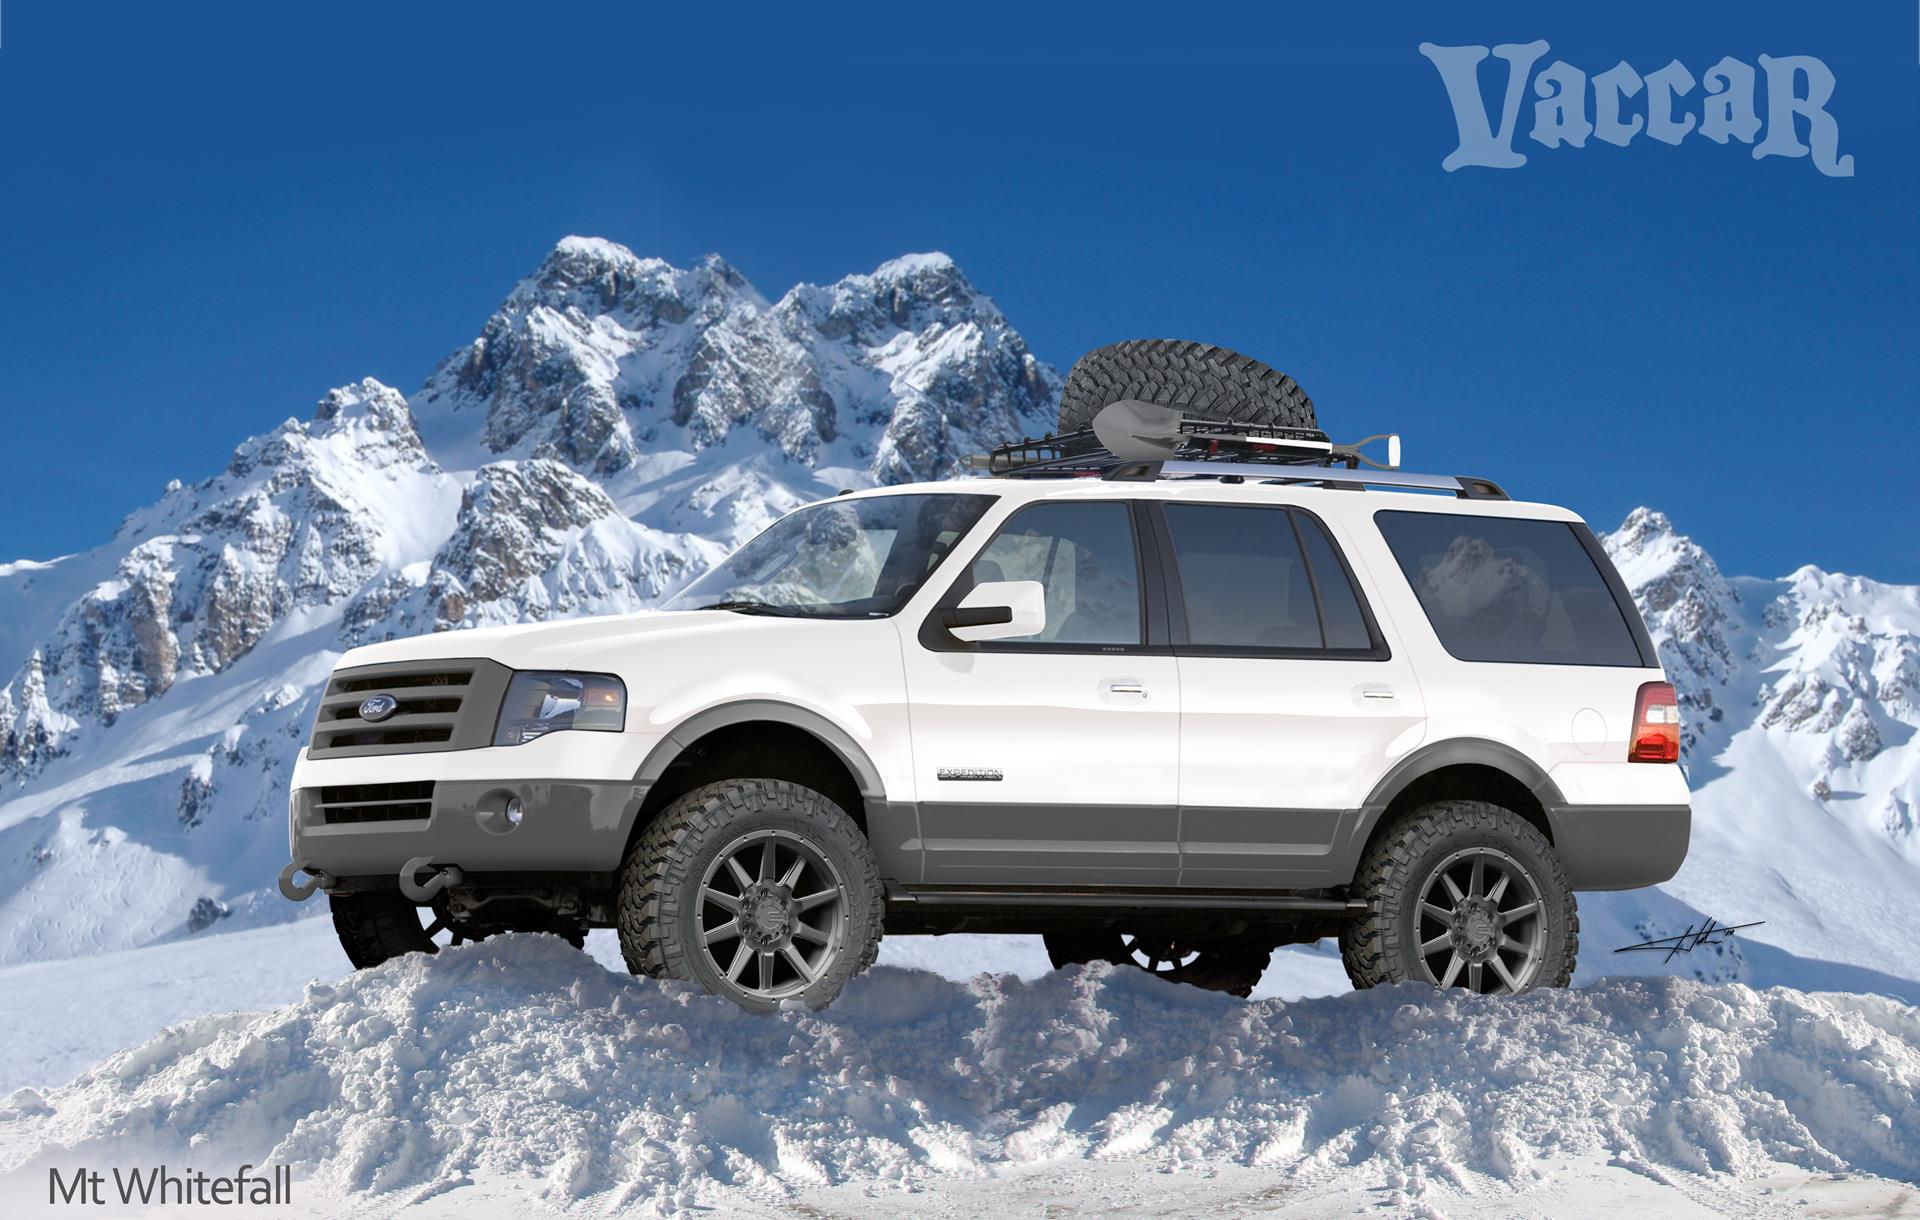 2014 Ford Expedition XLT Vaccar News and Information